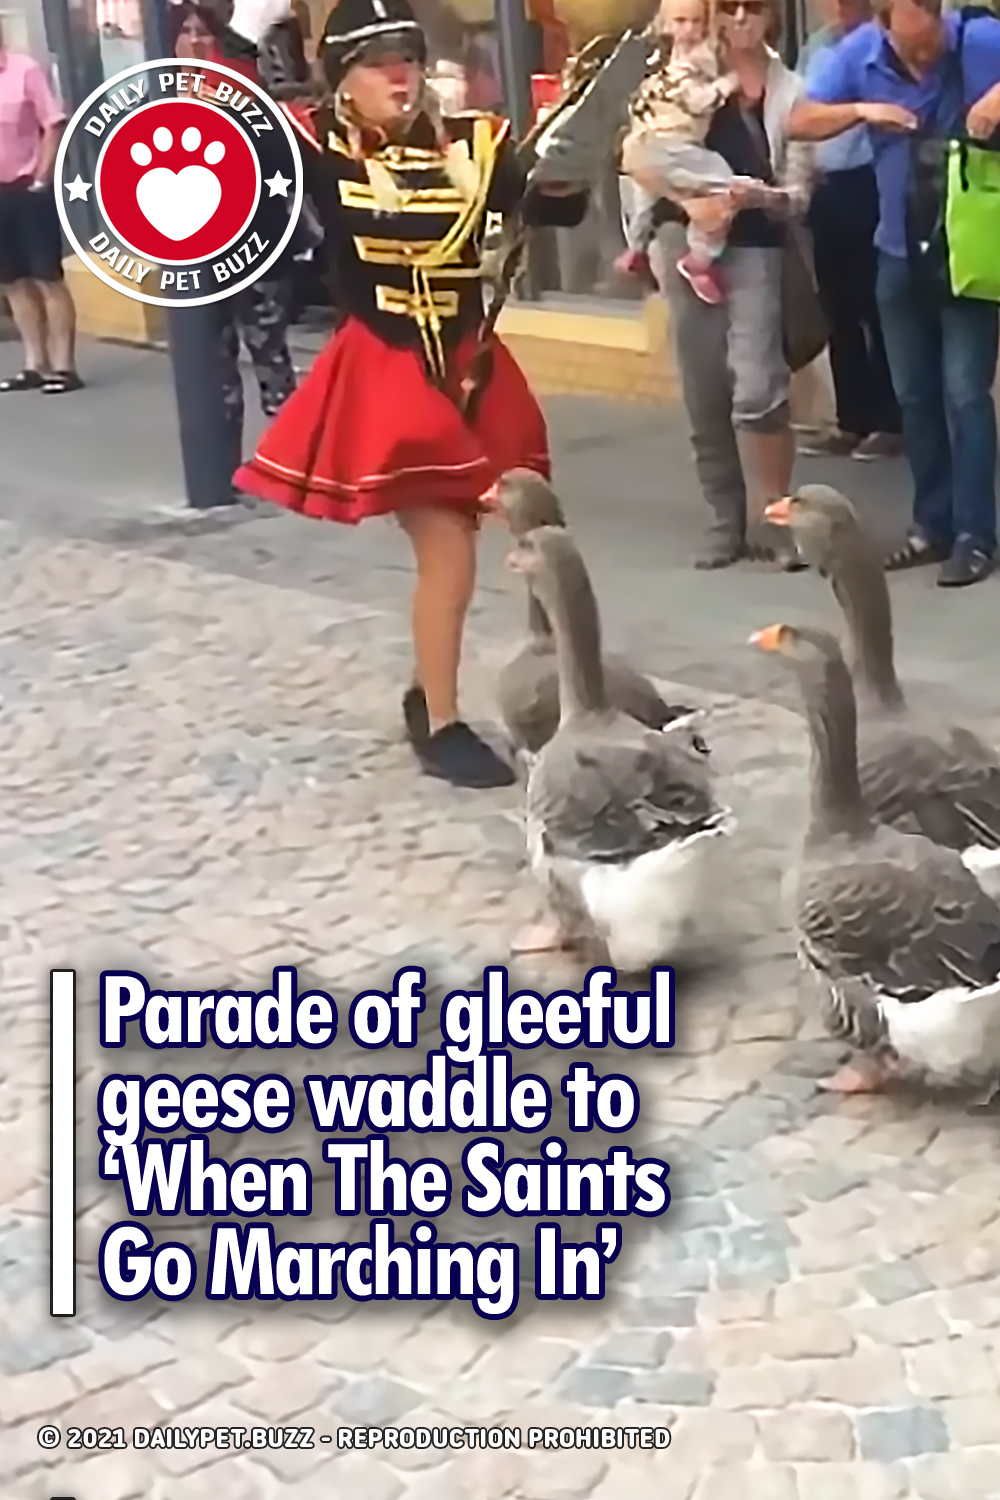 Parade of gleeful geese waddle to 'When The Saints Go Marching In'